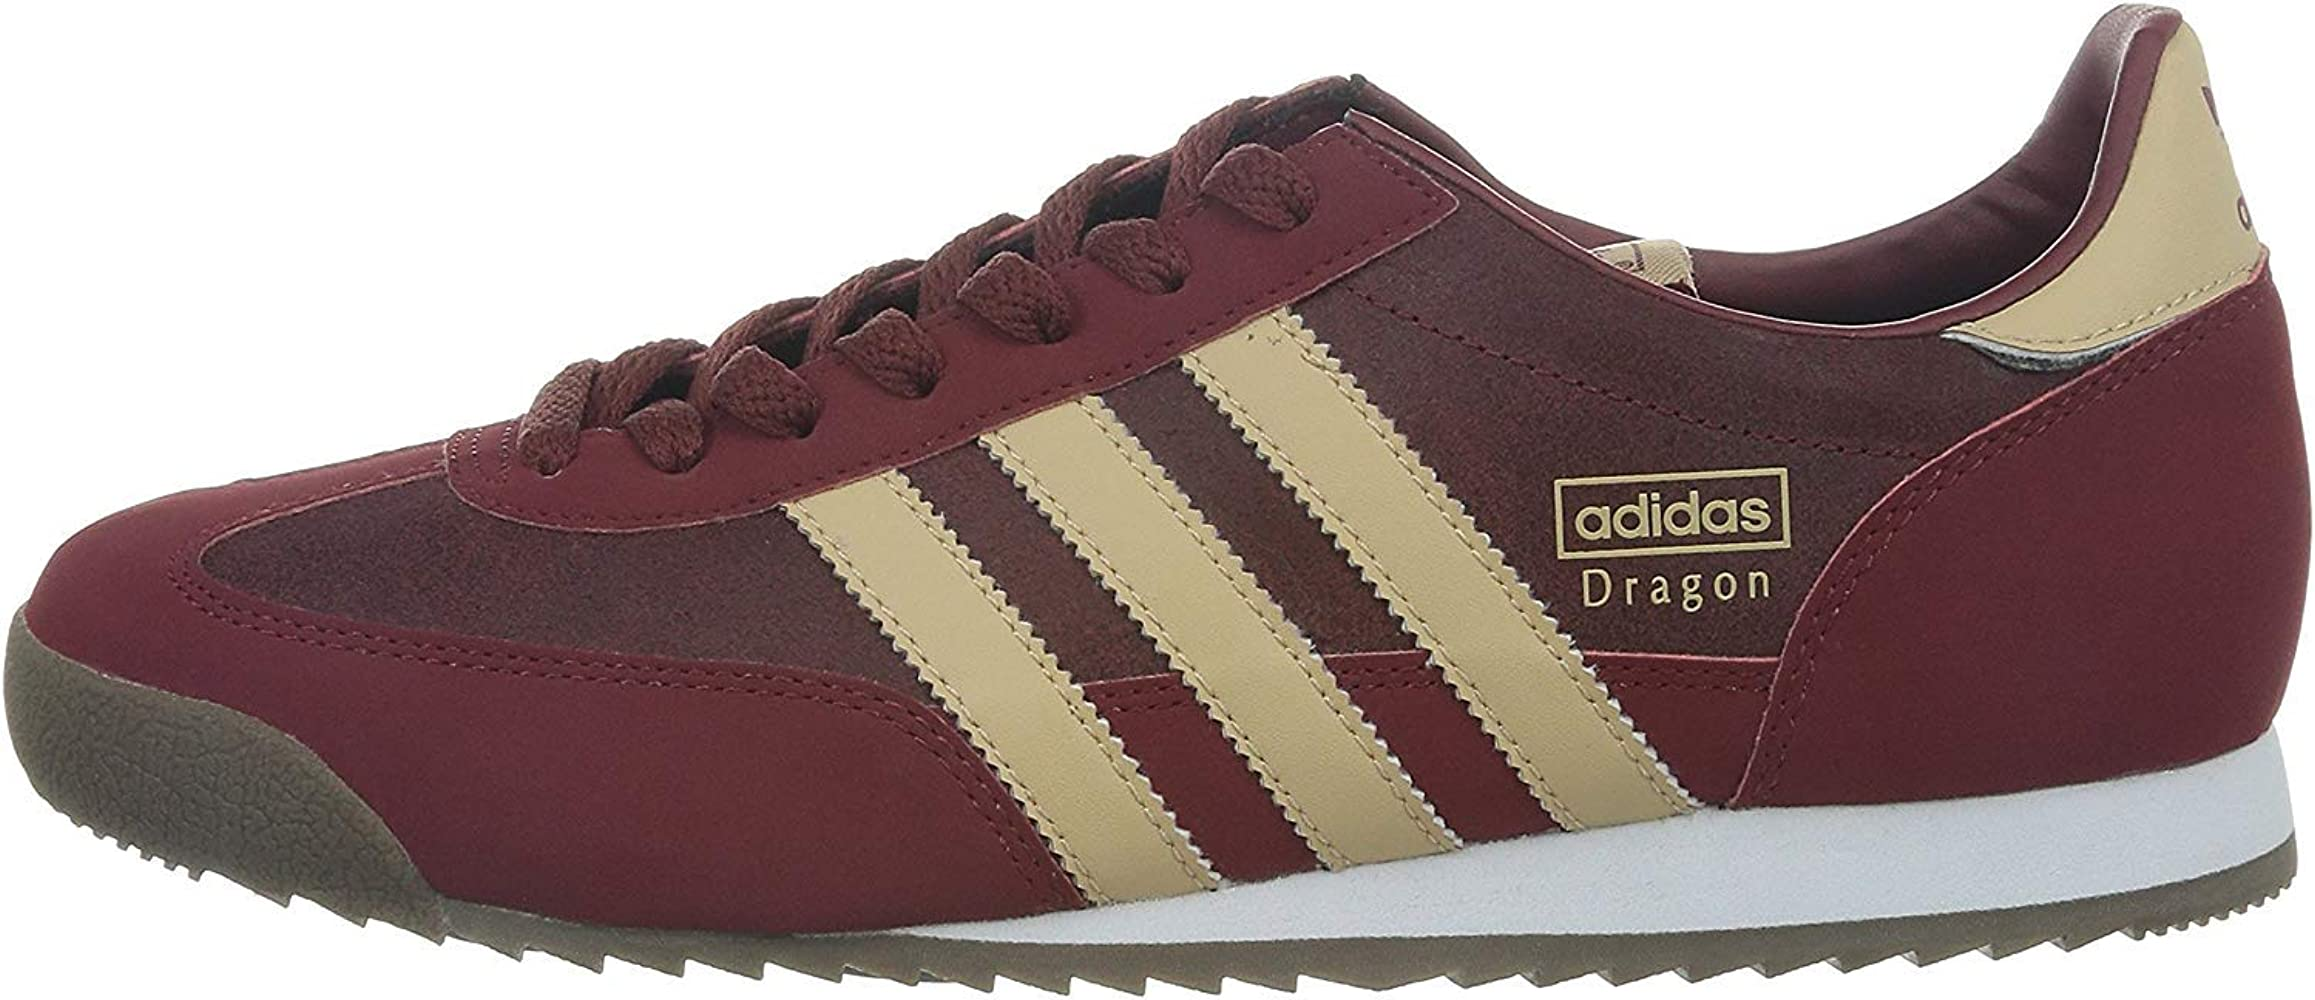 adidas dragon adulti